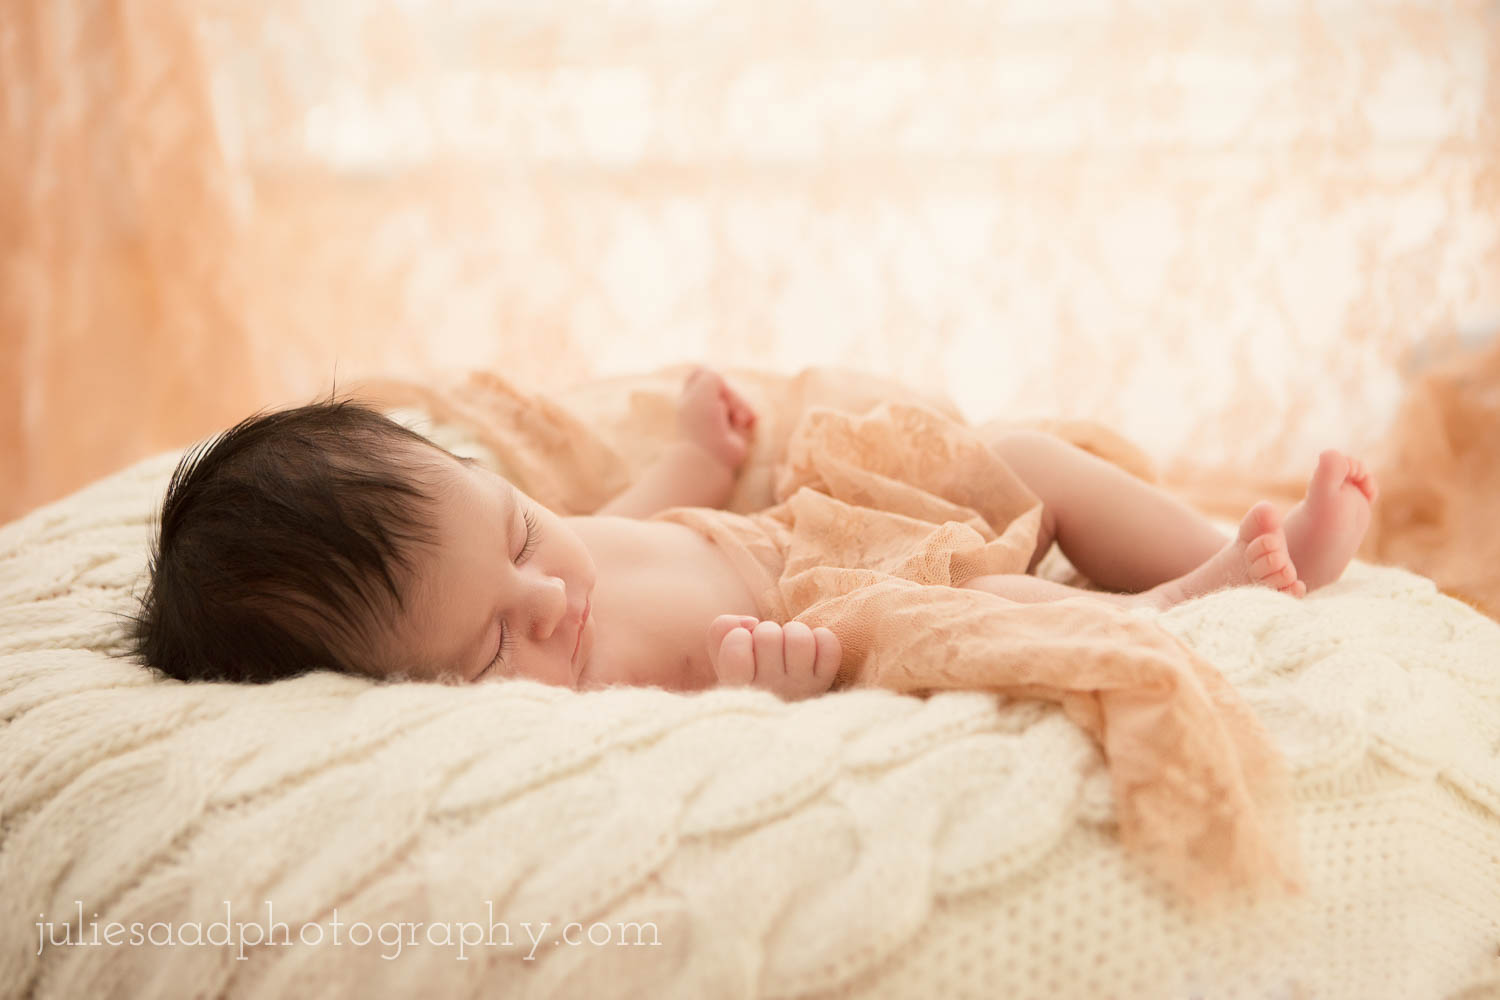 Newborn photography studio in New York. ©2014 Julie Saad Photography. Image of a newborn baby girl sleeping in sunlight.